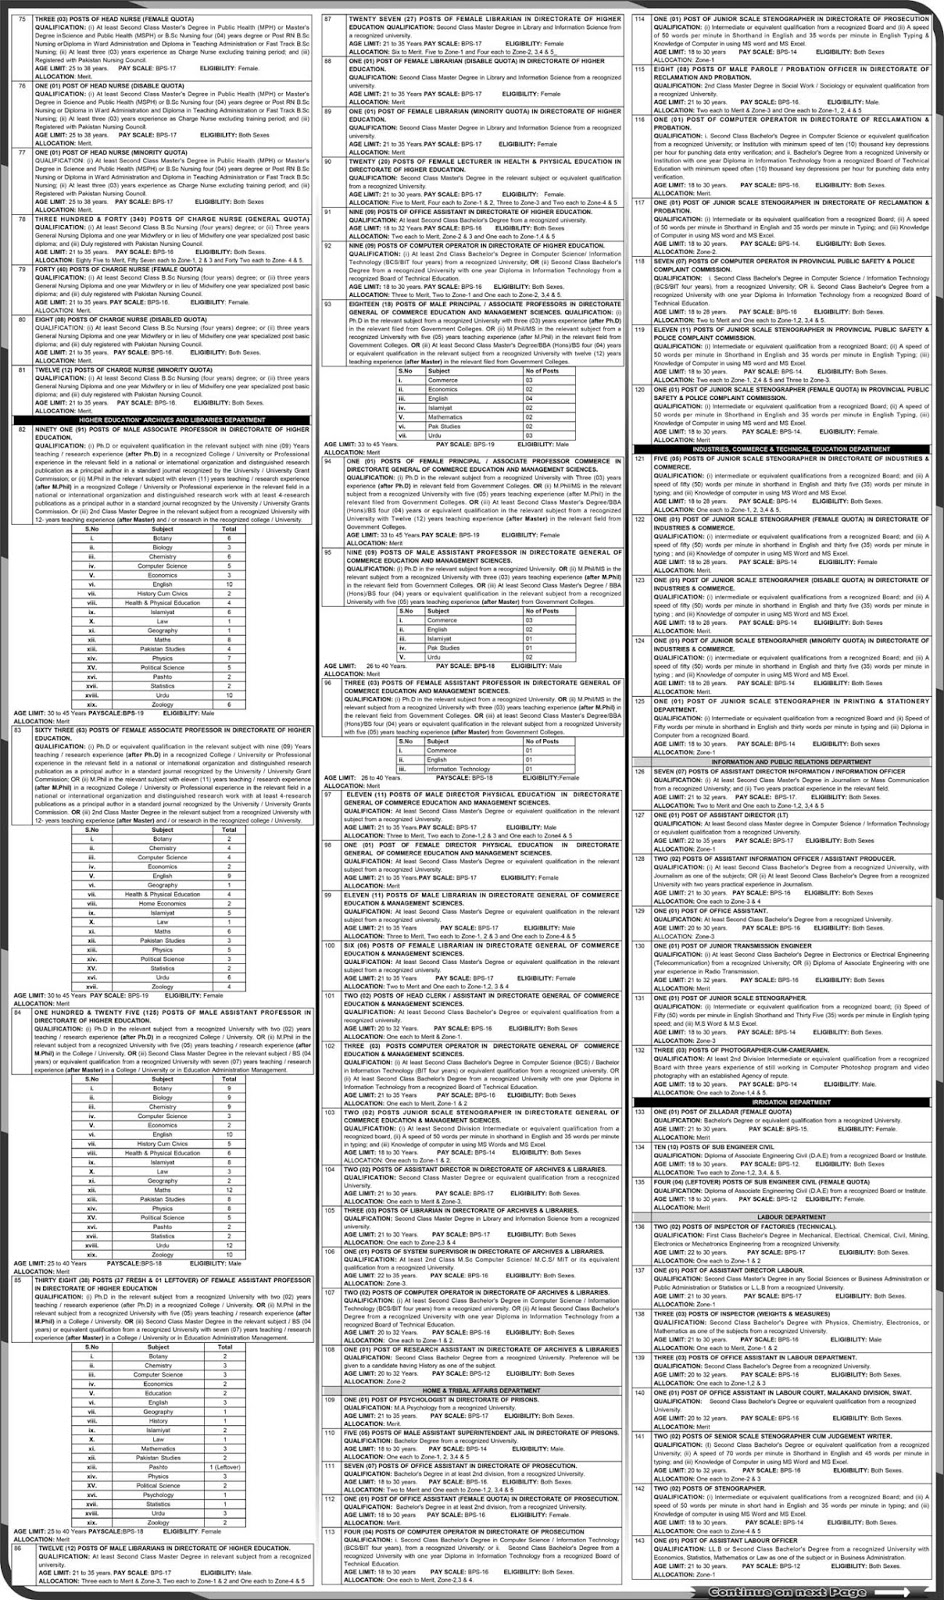 New Latest KPPSC Jobs Advertisement No. 3/2018 (3130 Vacancies)